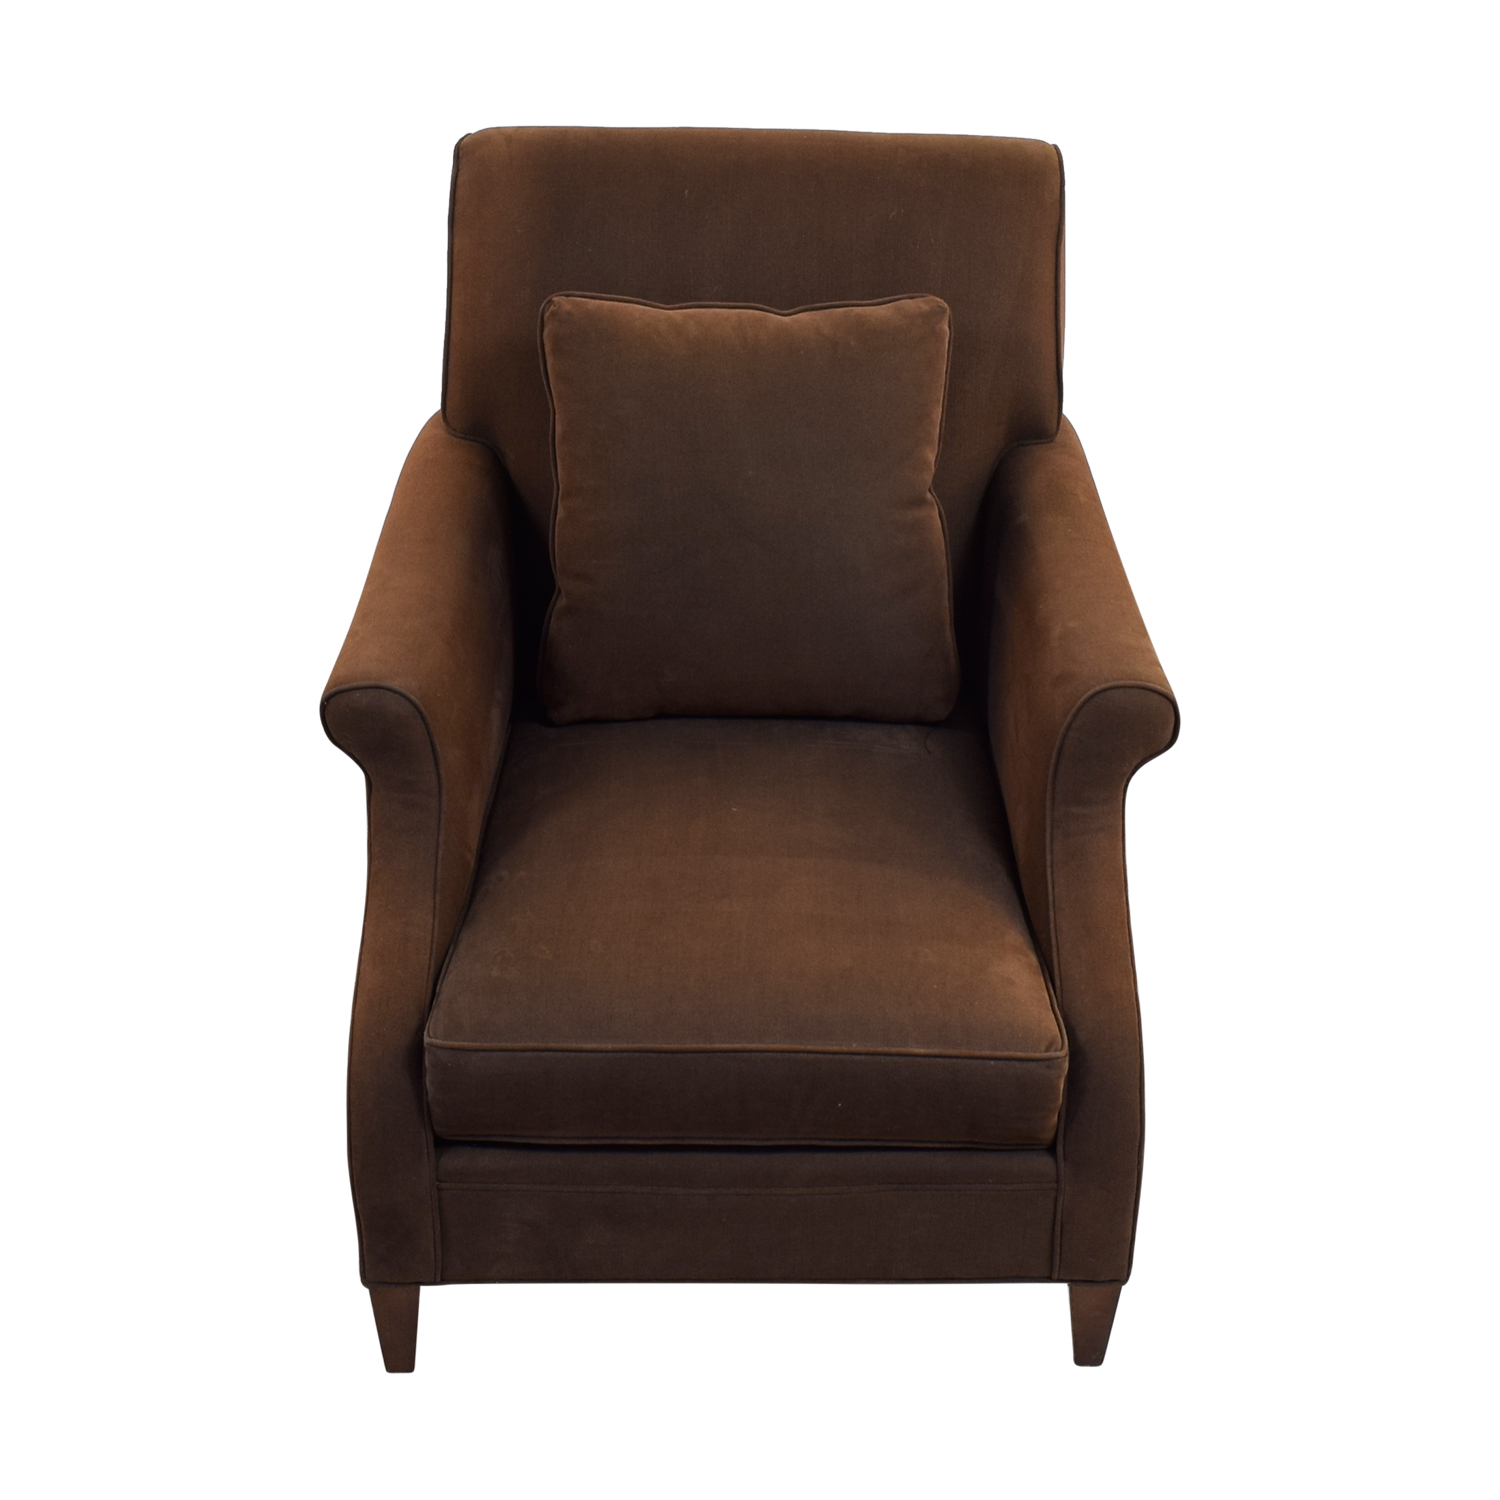 buy Mitchell Gold + Bob Williams Deep Seated Brown Armchair Mitchell Gold + Bob Williams Accent Chairs